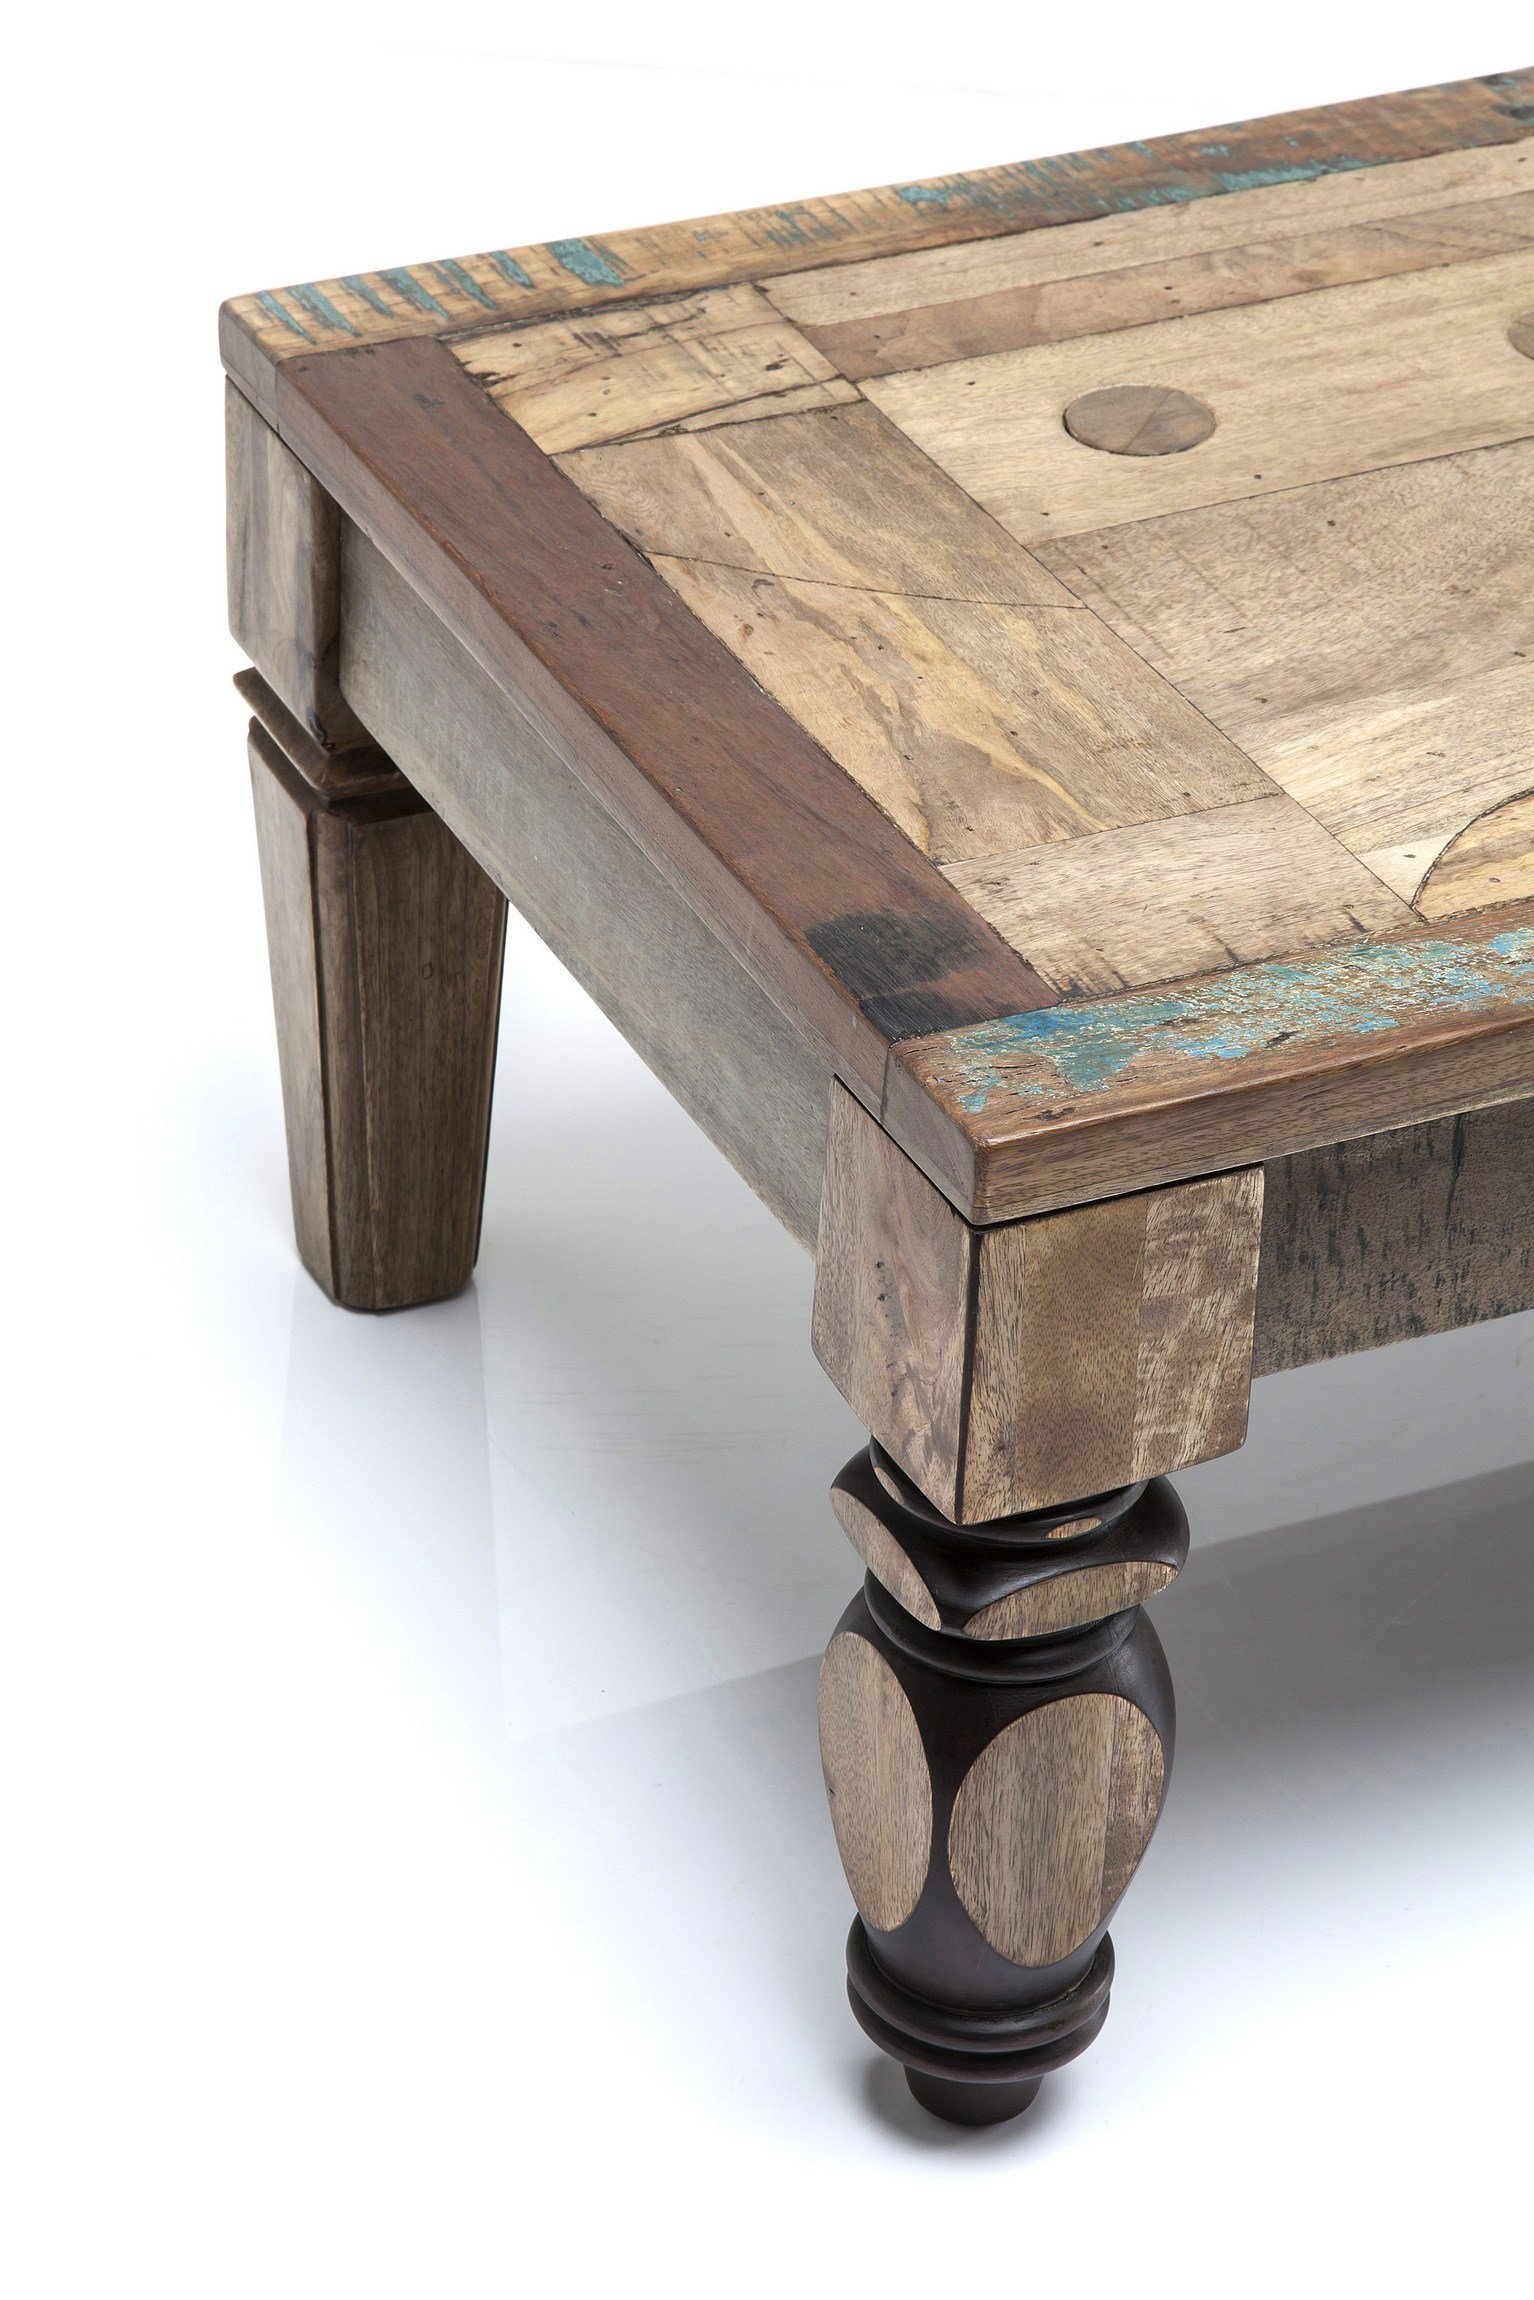 Range coffee tables image collections coffee table design ideas the range coffee table the coffee table duld coffee table collection by kare design geotapseo image geotapseo Images